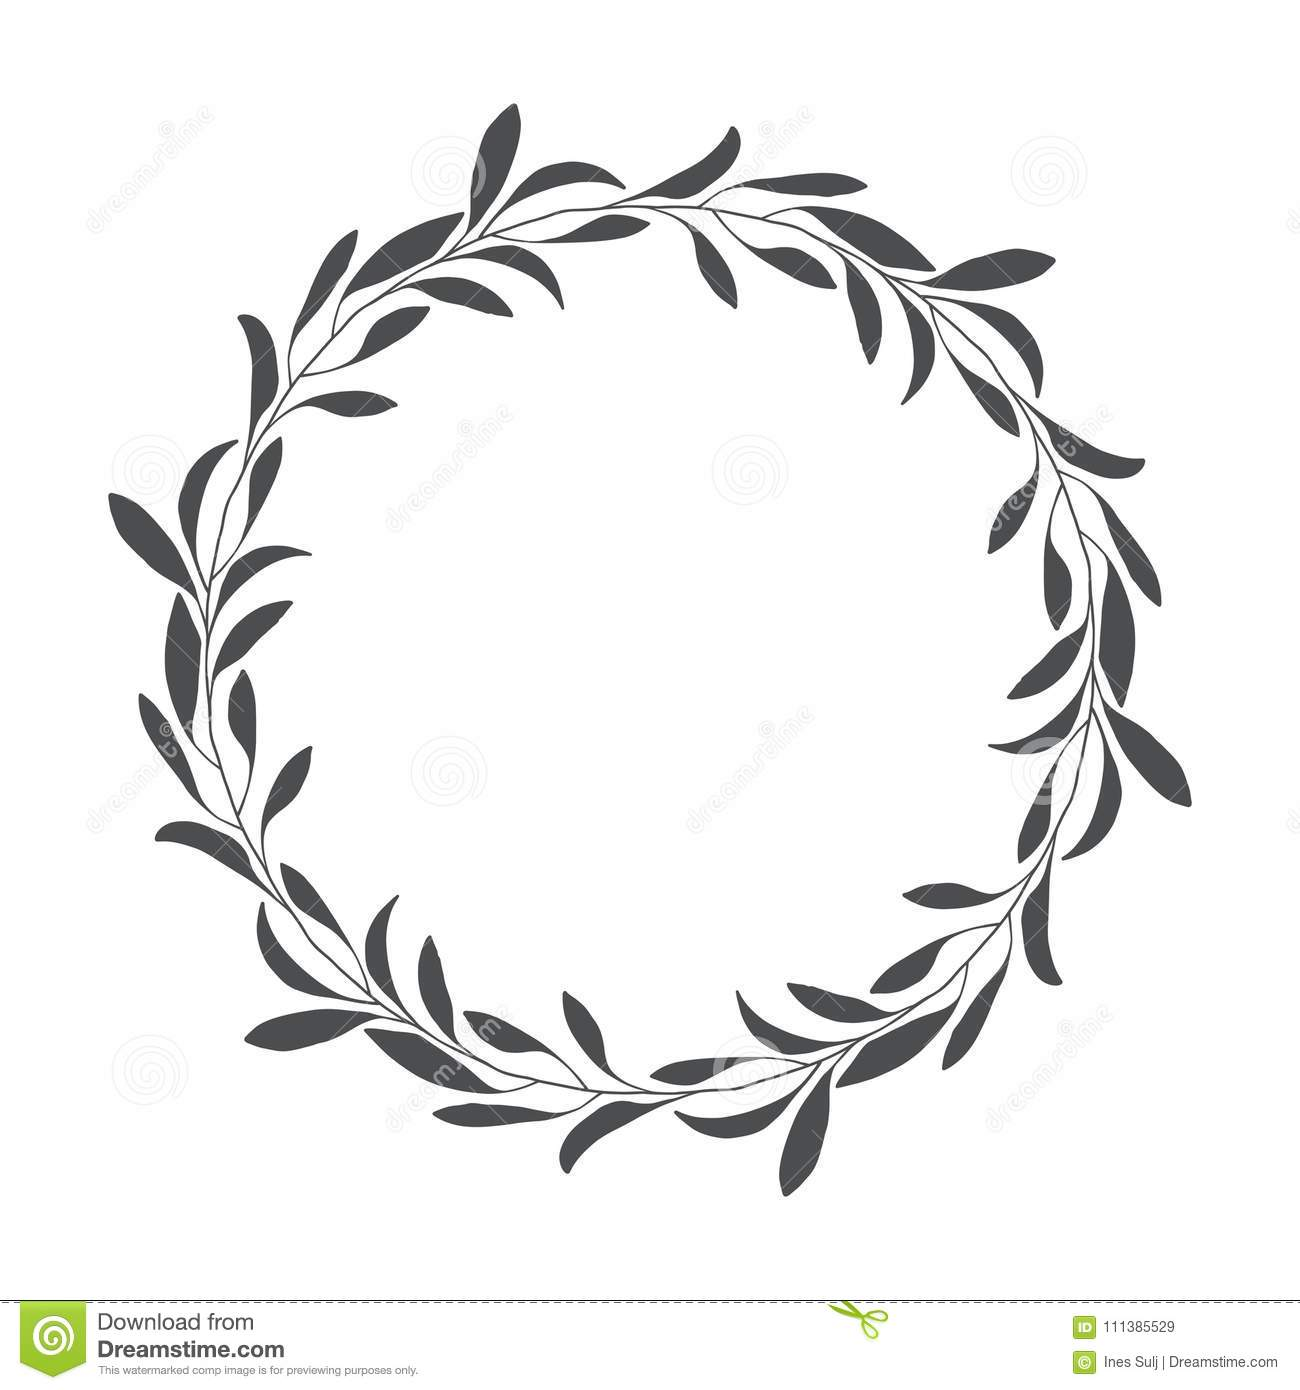 Vector Hand Drawn Floral Wreath, Round Frame With Leaves Stock.